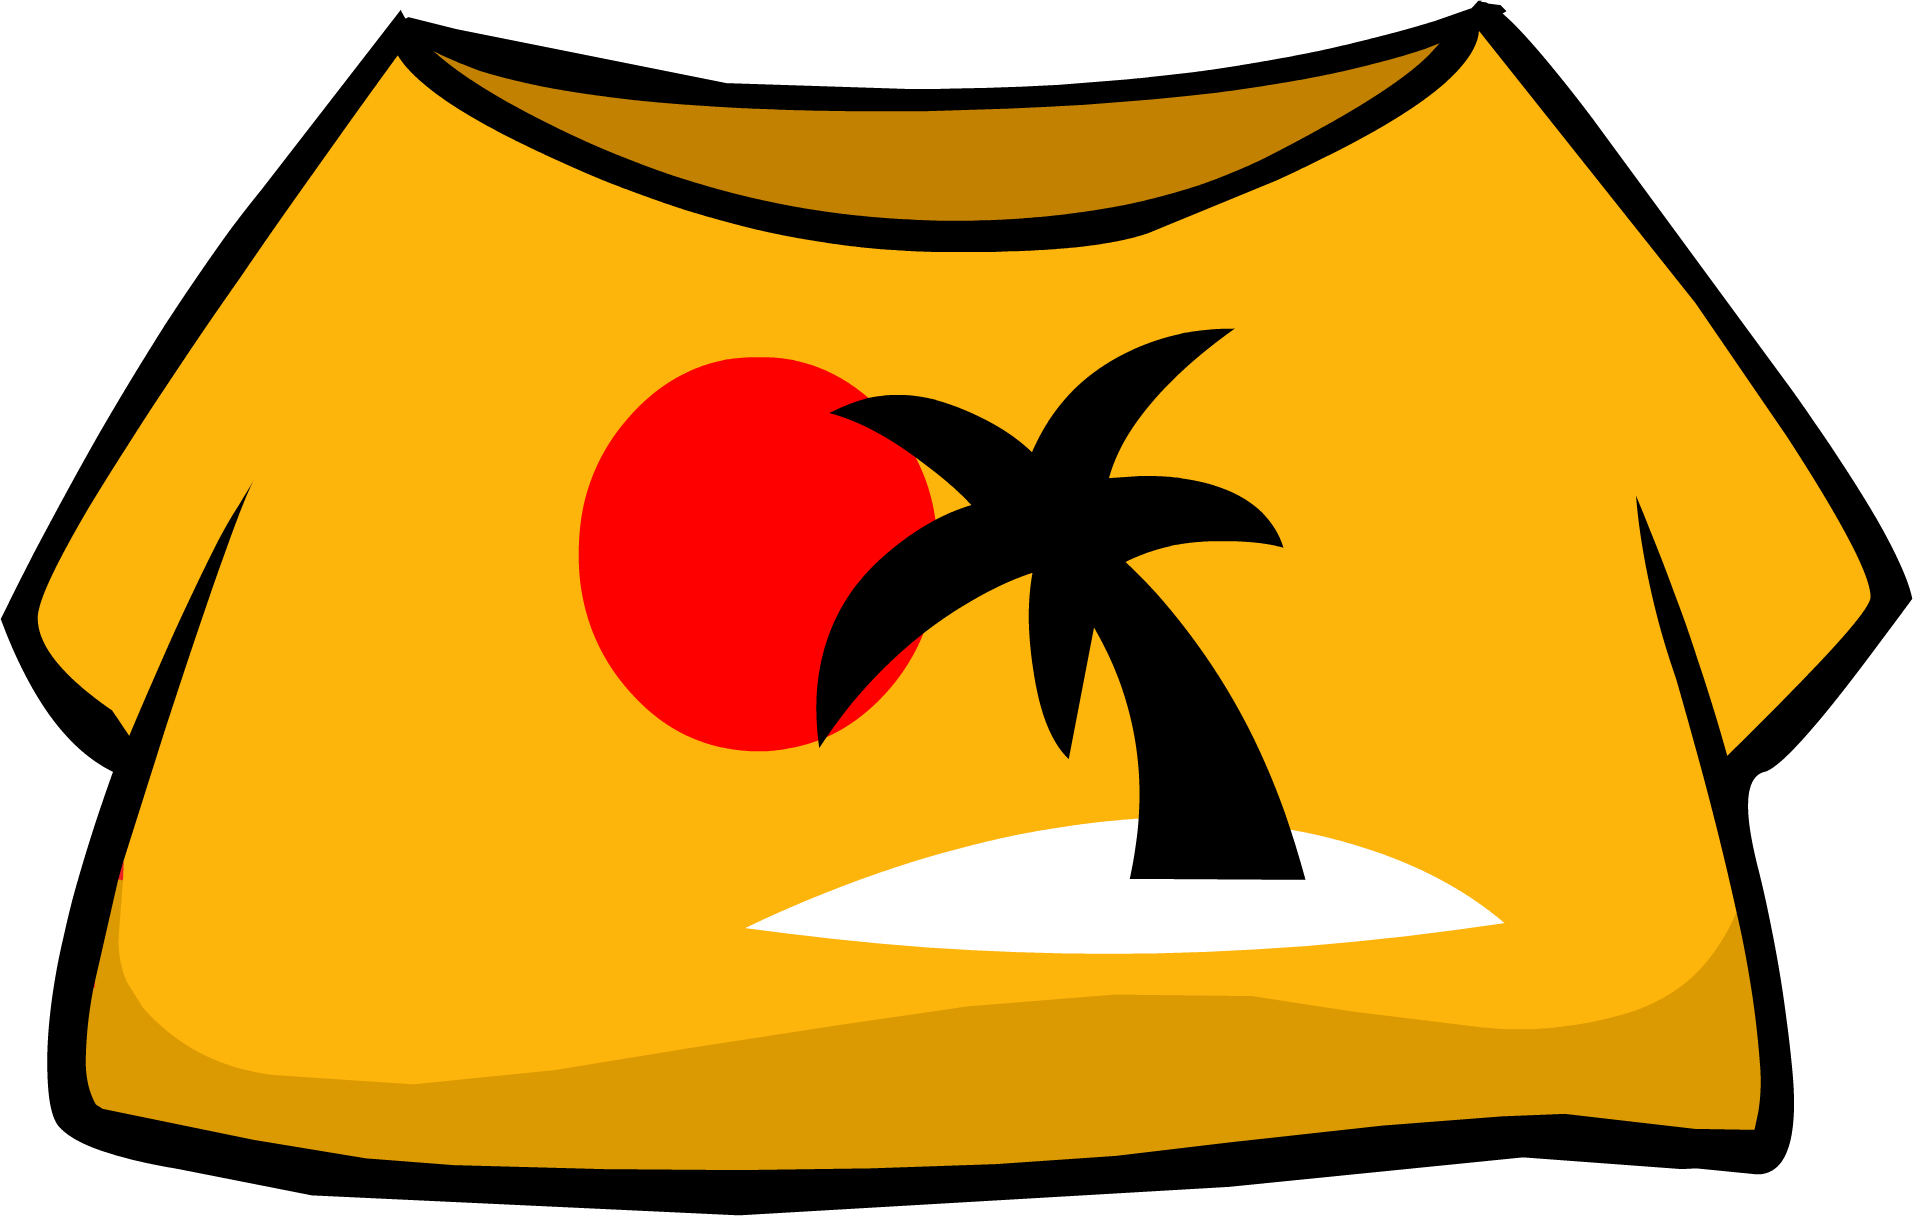 T shirt club penguin. Sunset clipart island caribbean